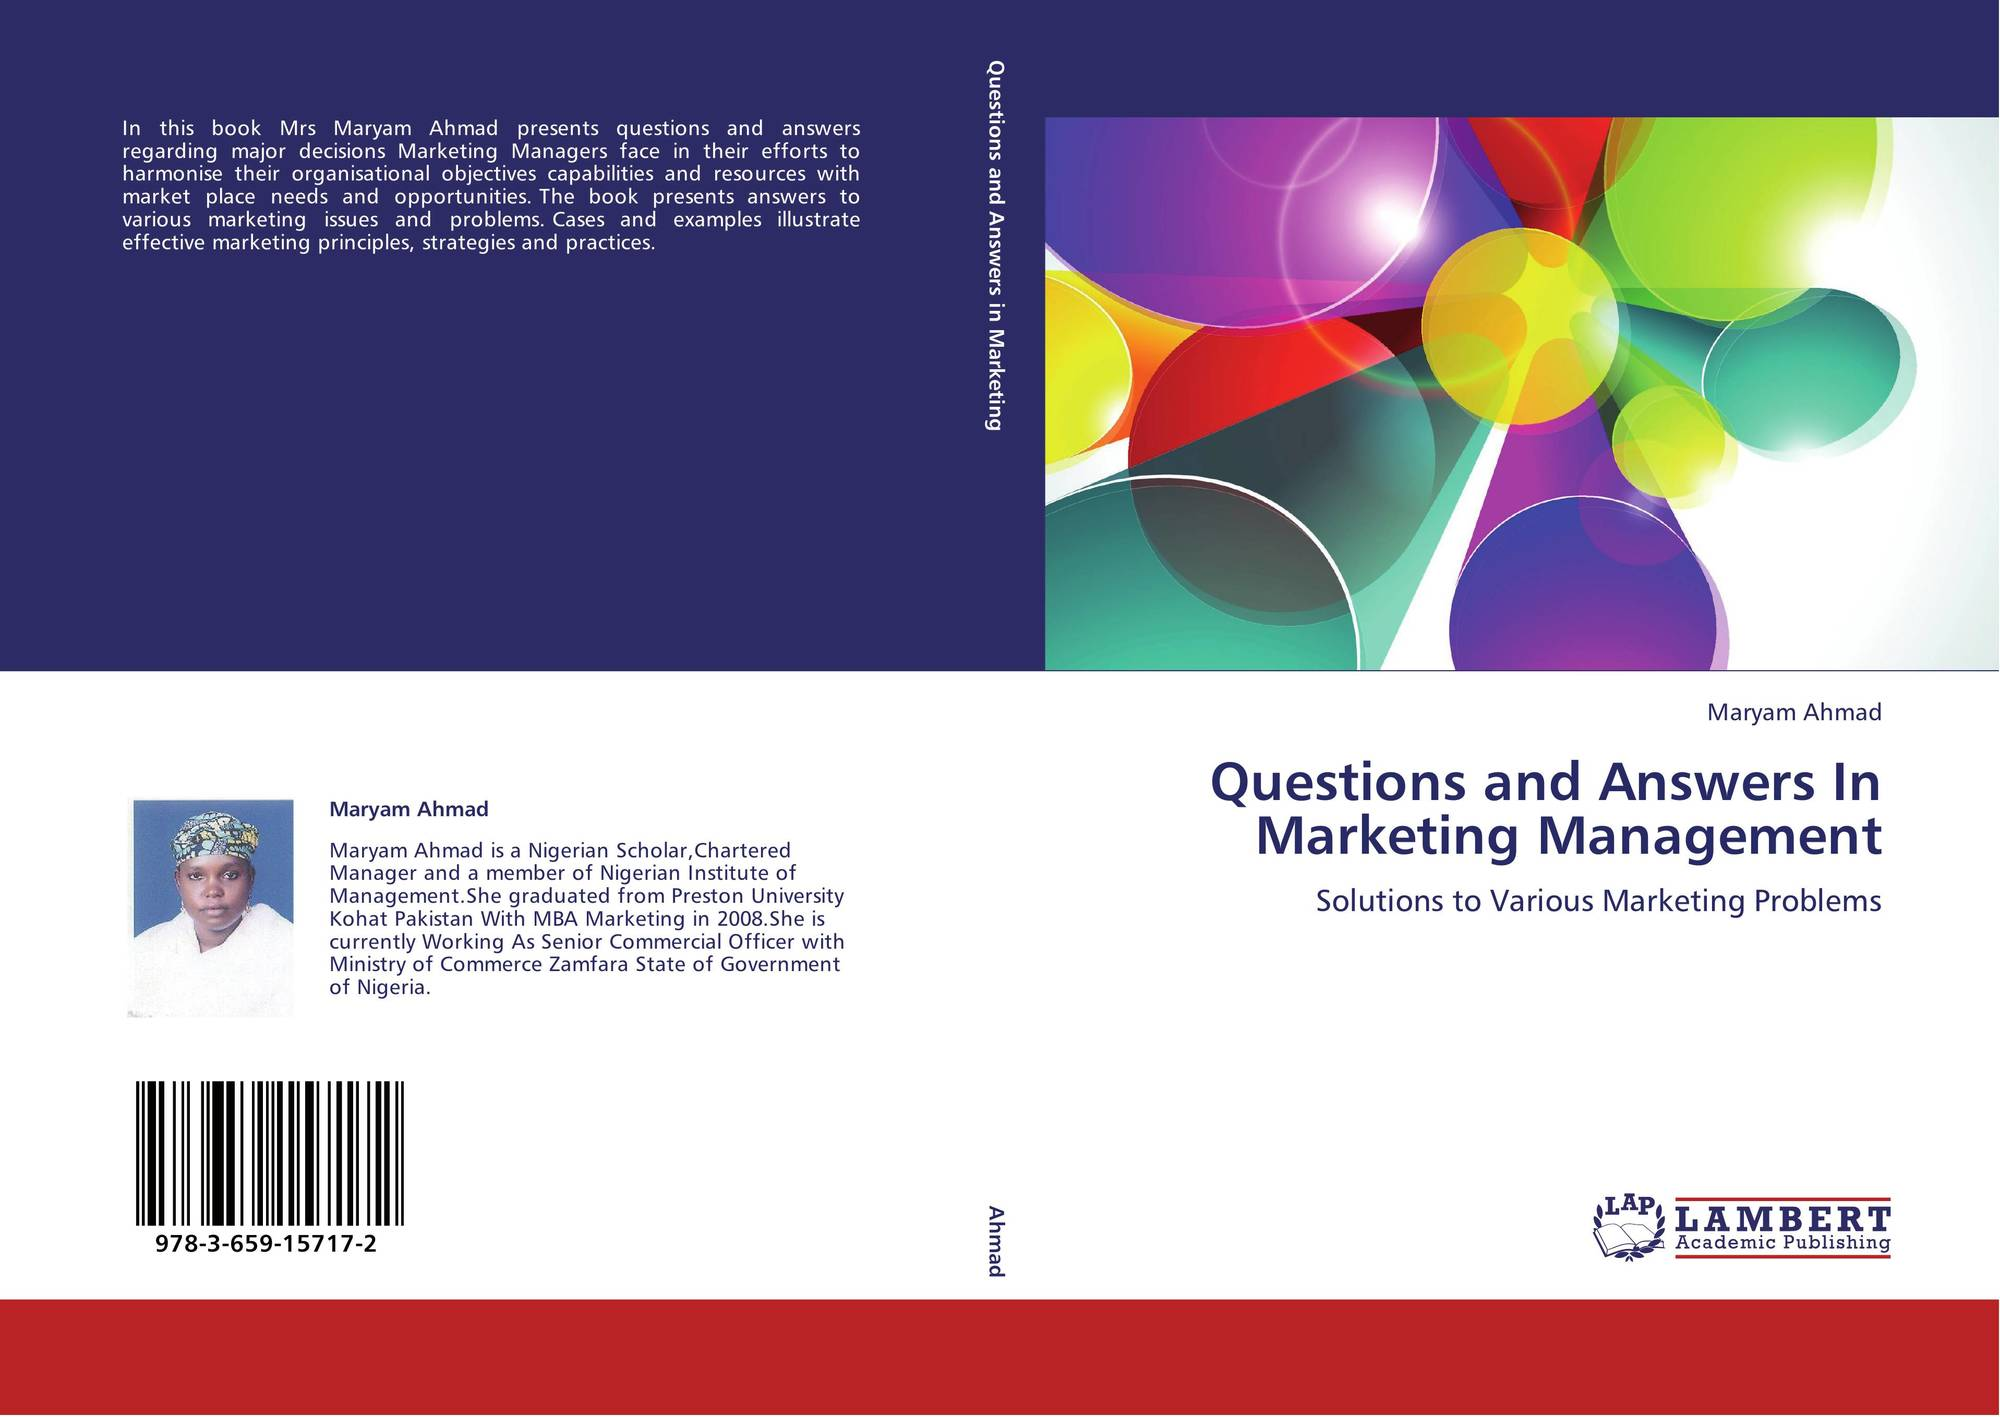 Questions and Answers In Marketing Management, 978-3-659